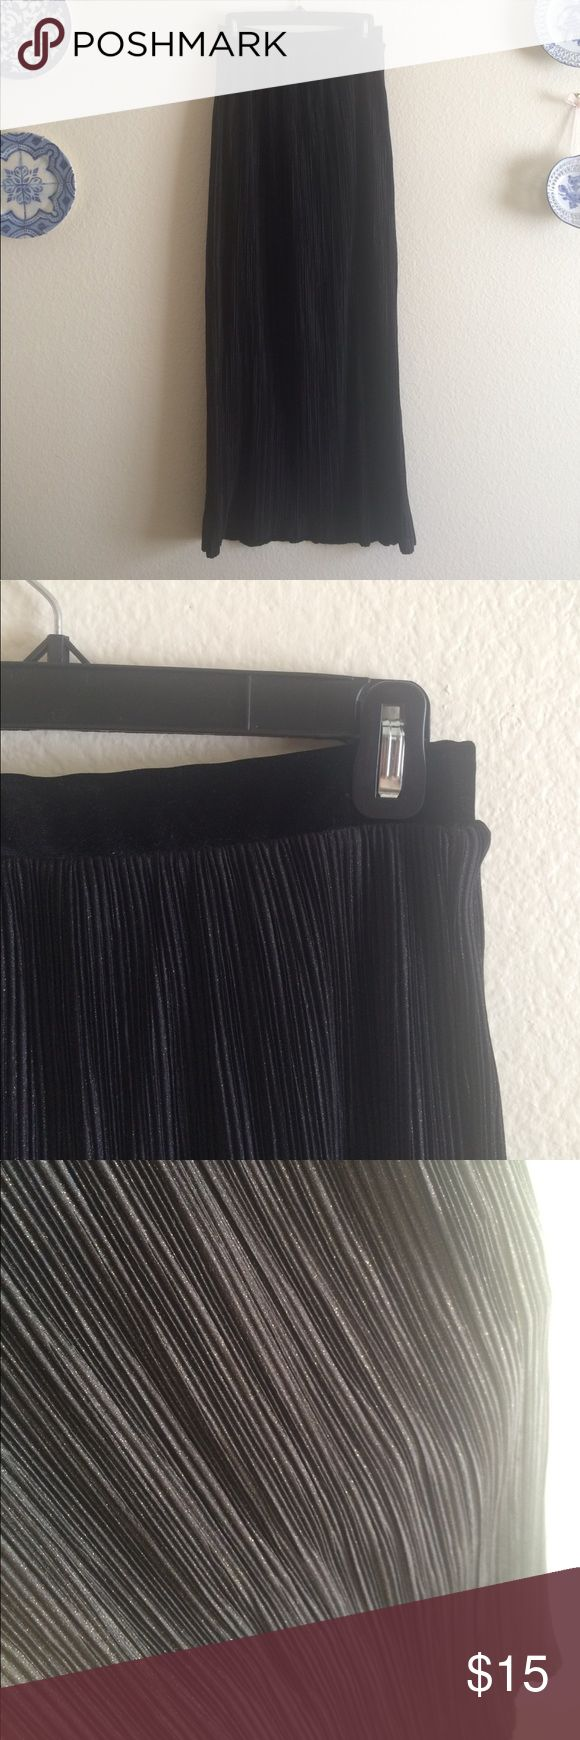 High Waist Black Maxi Skirt 100% Polyester maxi skirt with mini pleat detail and subtle gold shimmer. Velvet waist band. Partially lined. Brand is One Clothing. Sabo Skirt Skirts Maxi